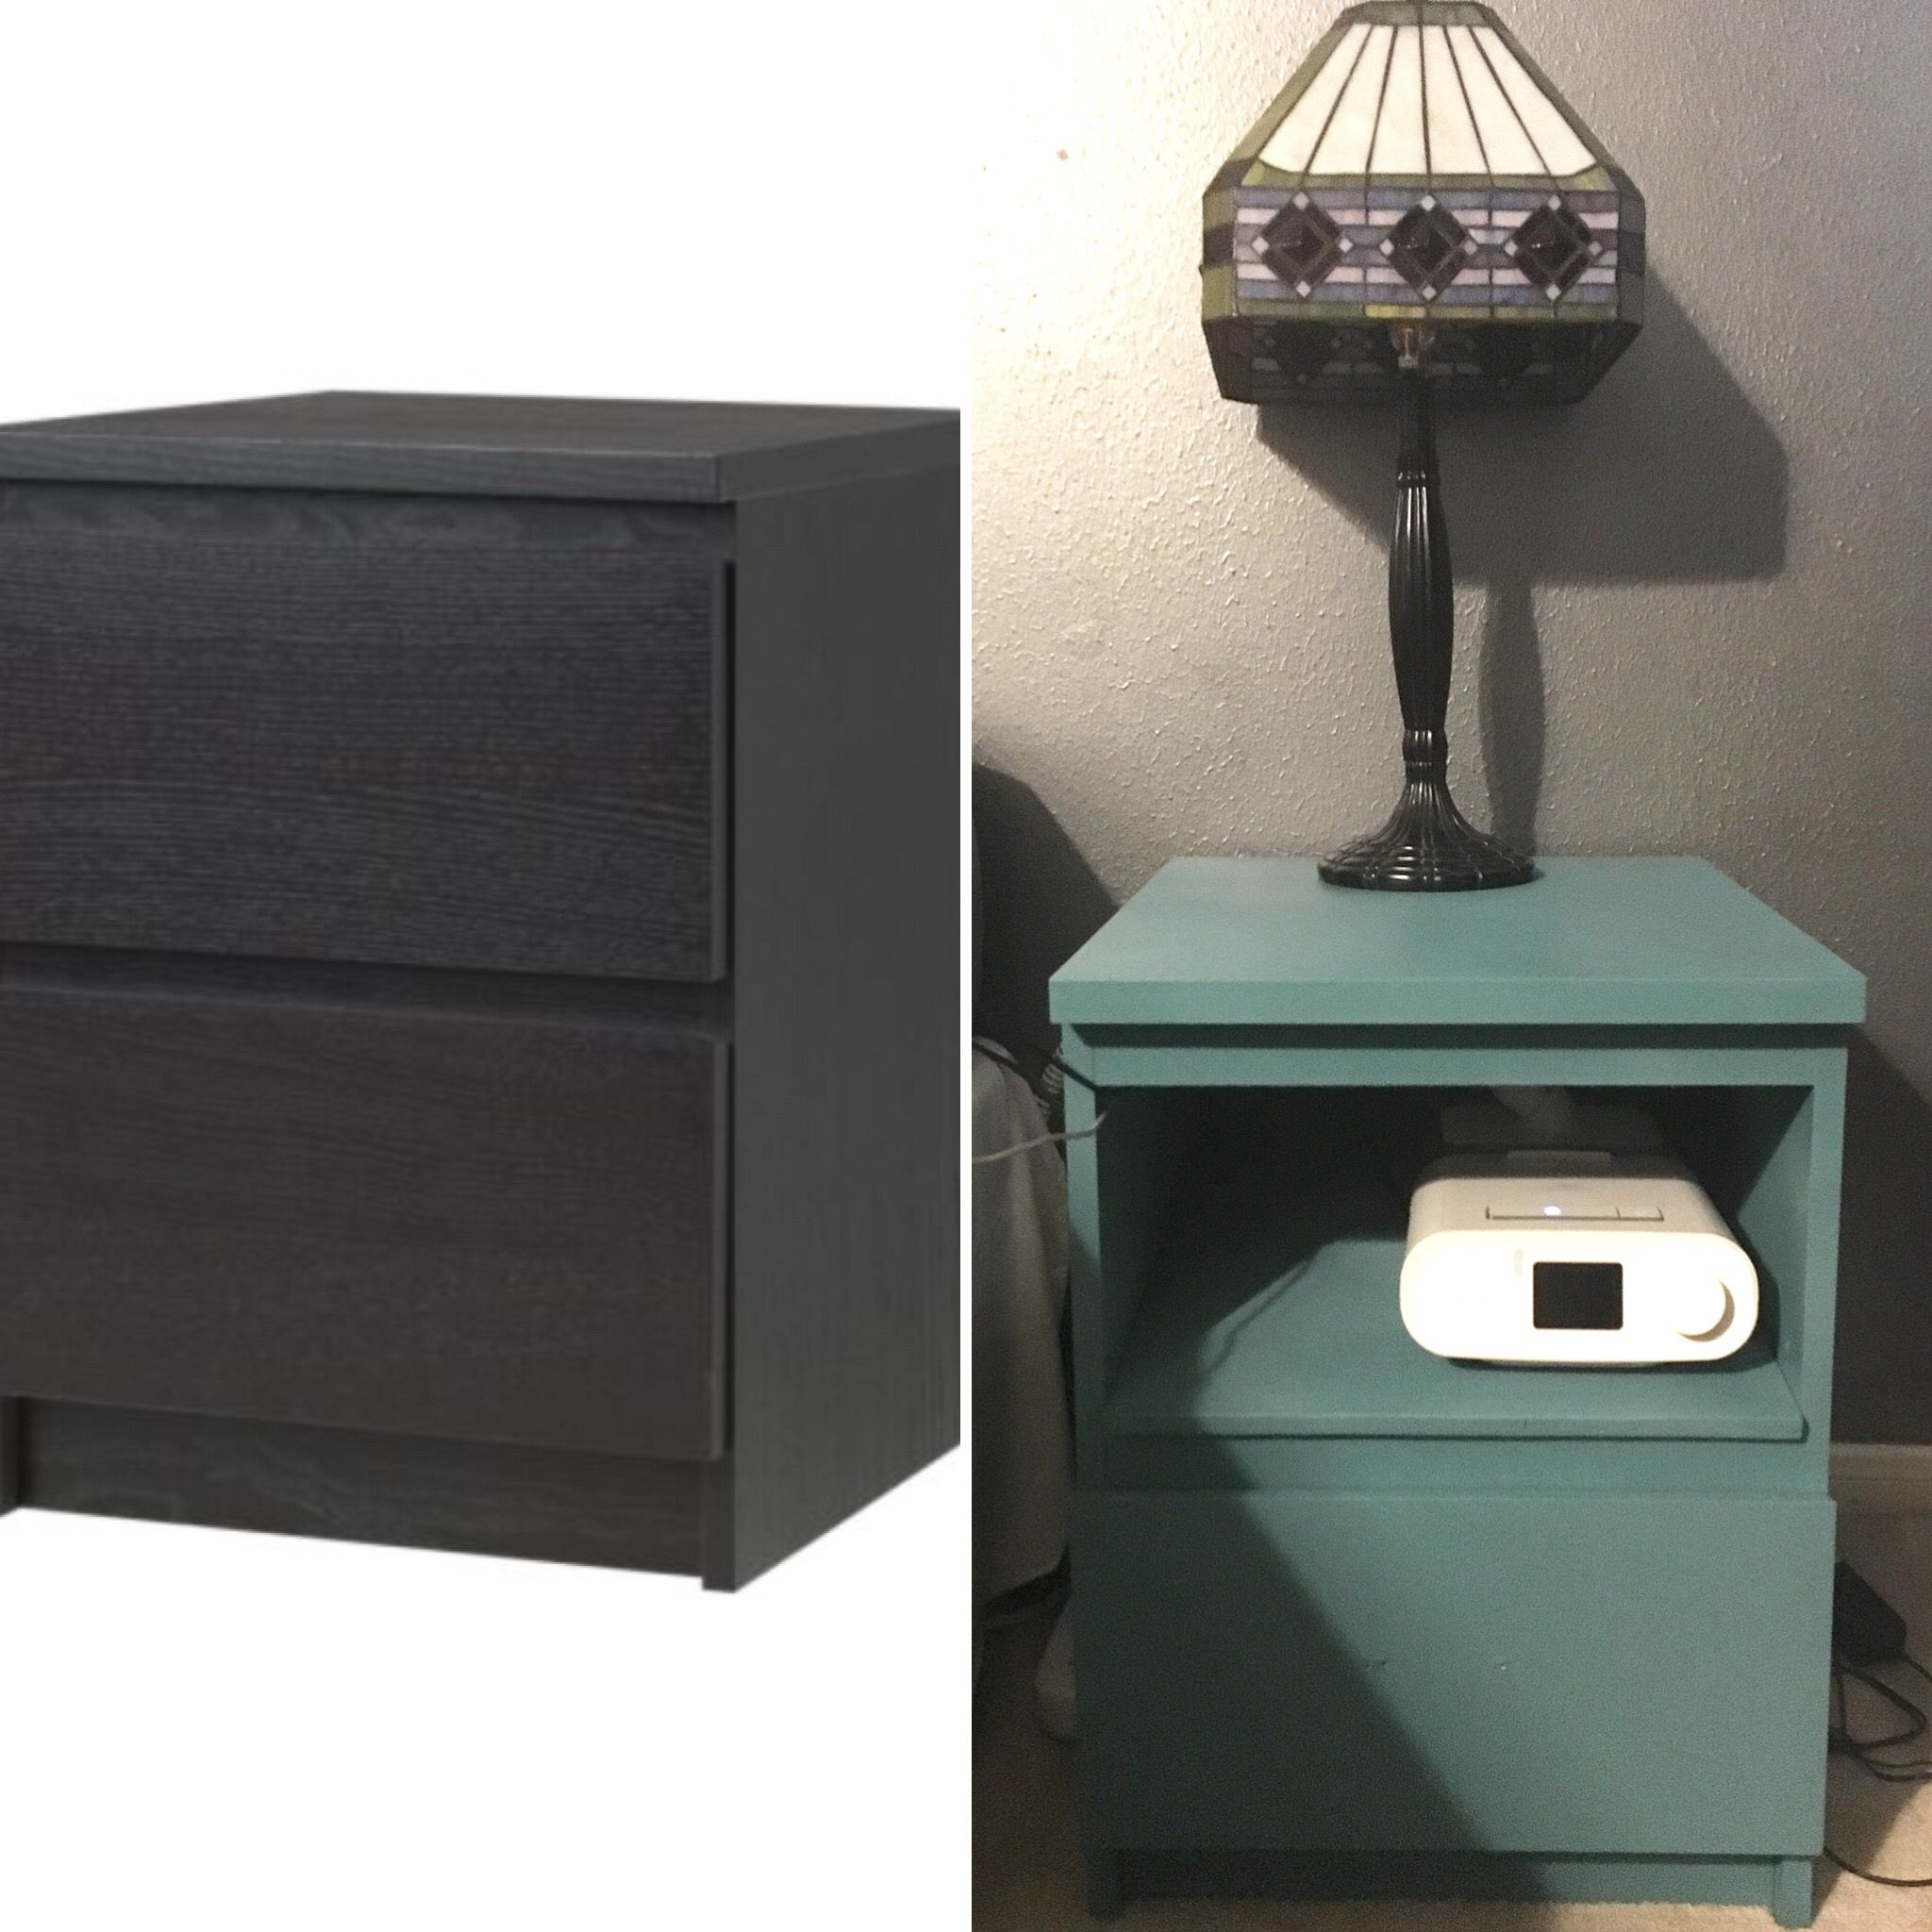 Malm Nightstand Hack To Accommodate A Cpap Machine House